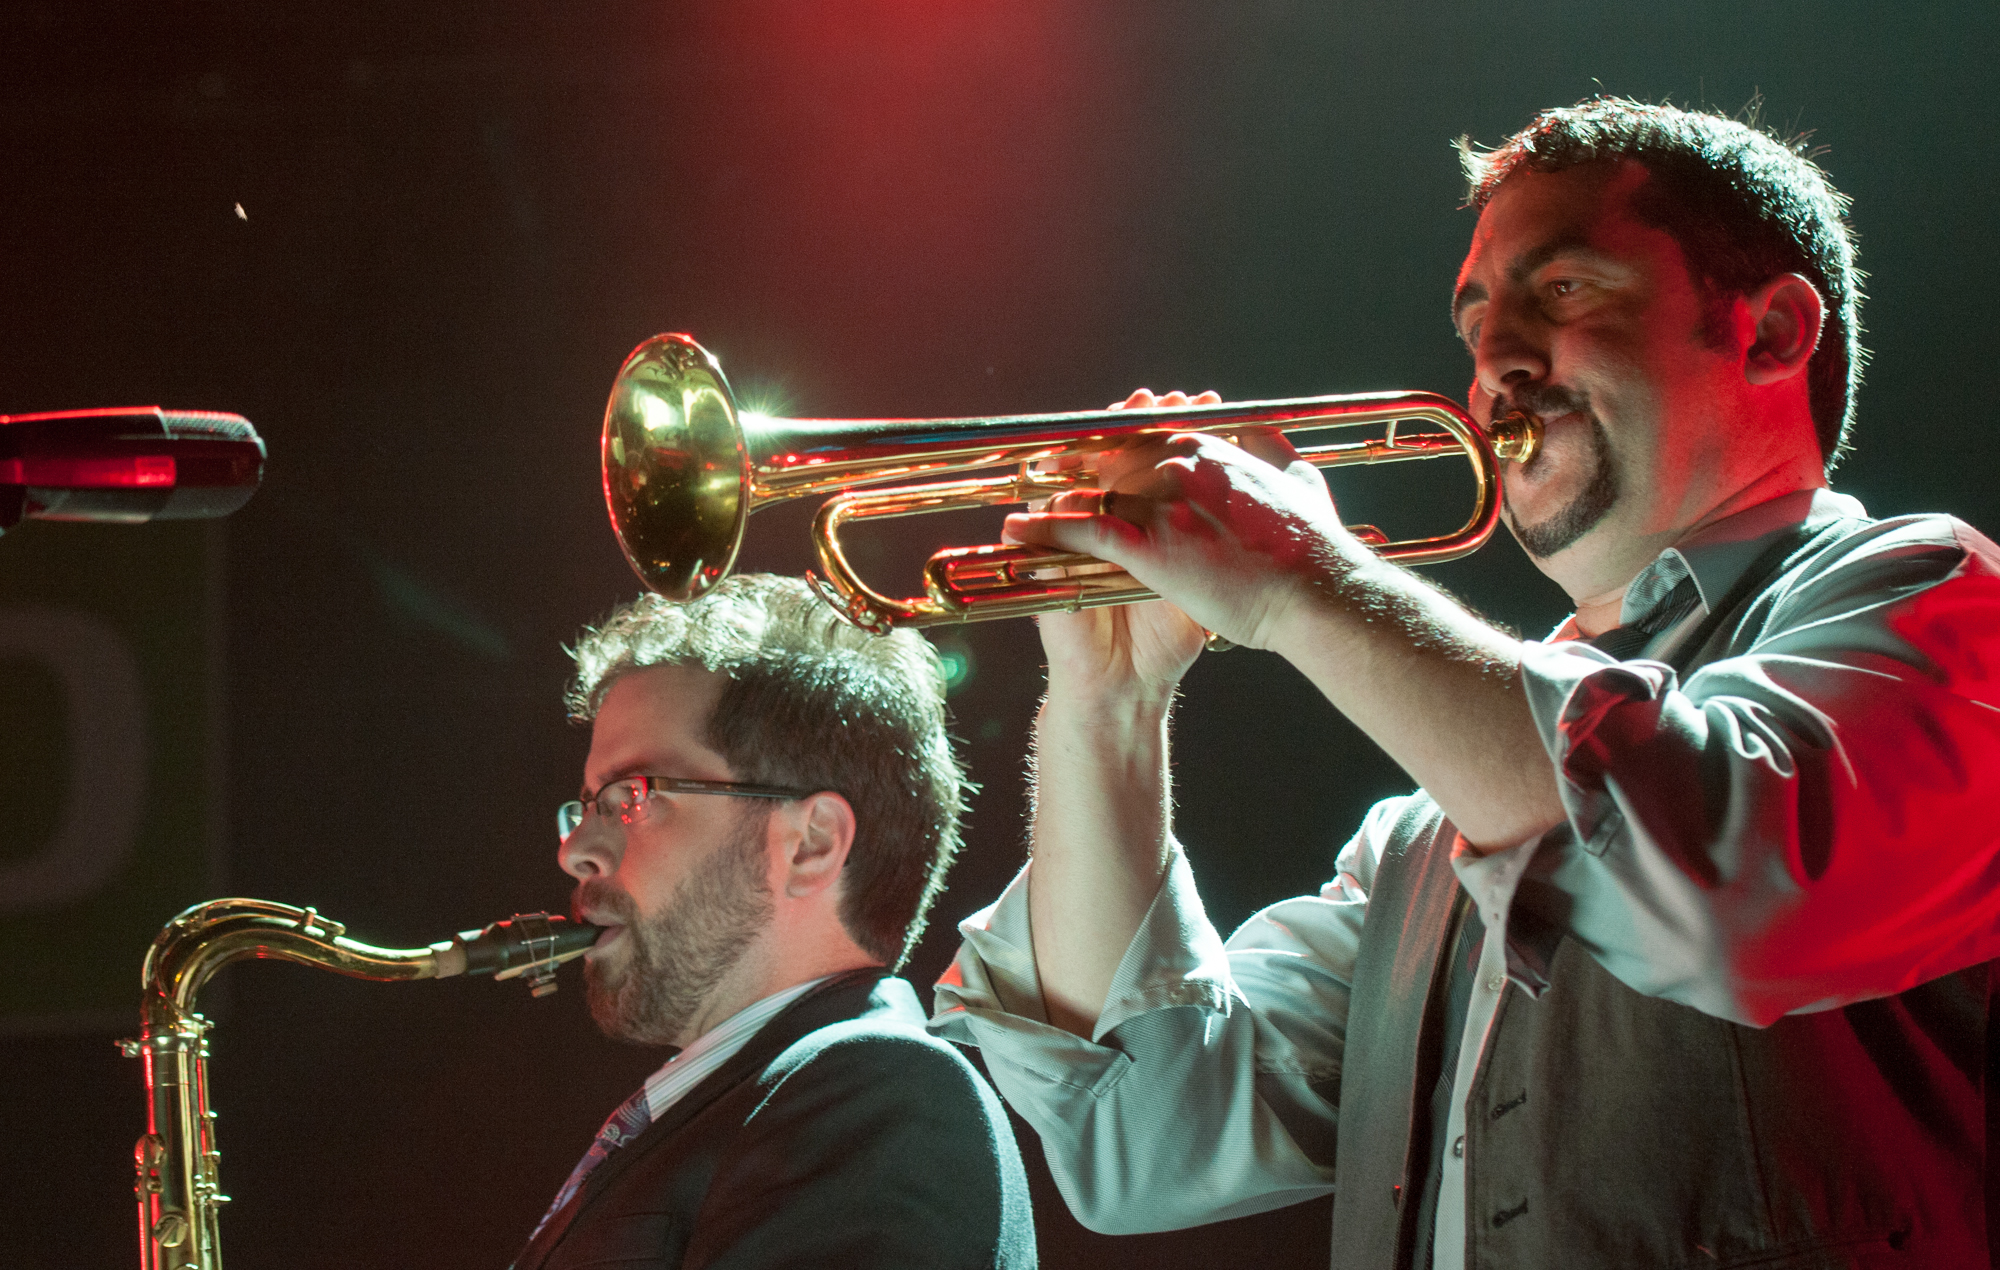 Evan cobb and jon-paul frappier with charles walker and the dynamites at the montreal international jazz festival 2013